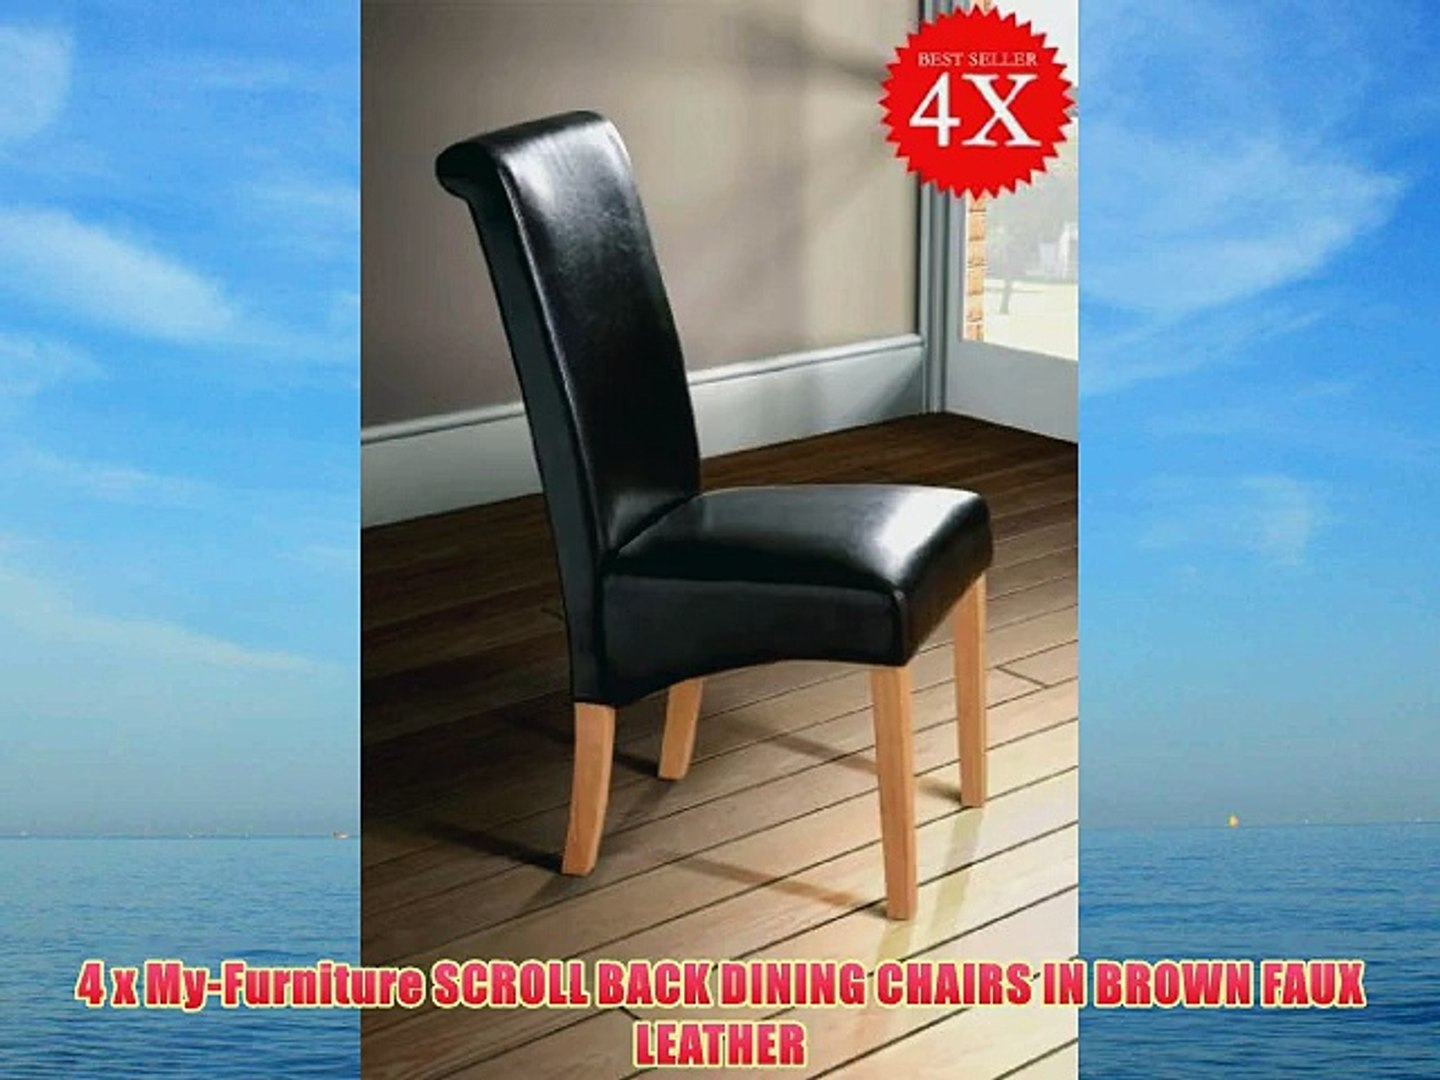 Magnificent Milano Scroll Back Faux Leather Dining Room Chair Brown X4 Pabps2019 Chair Design Images Pabps2019Com